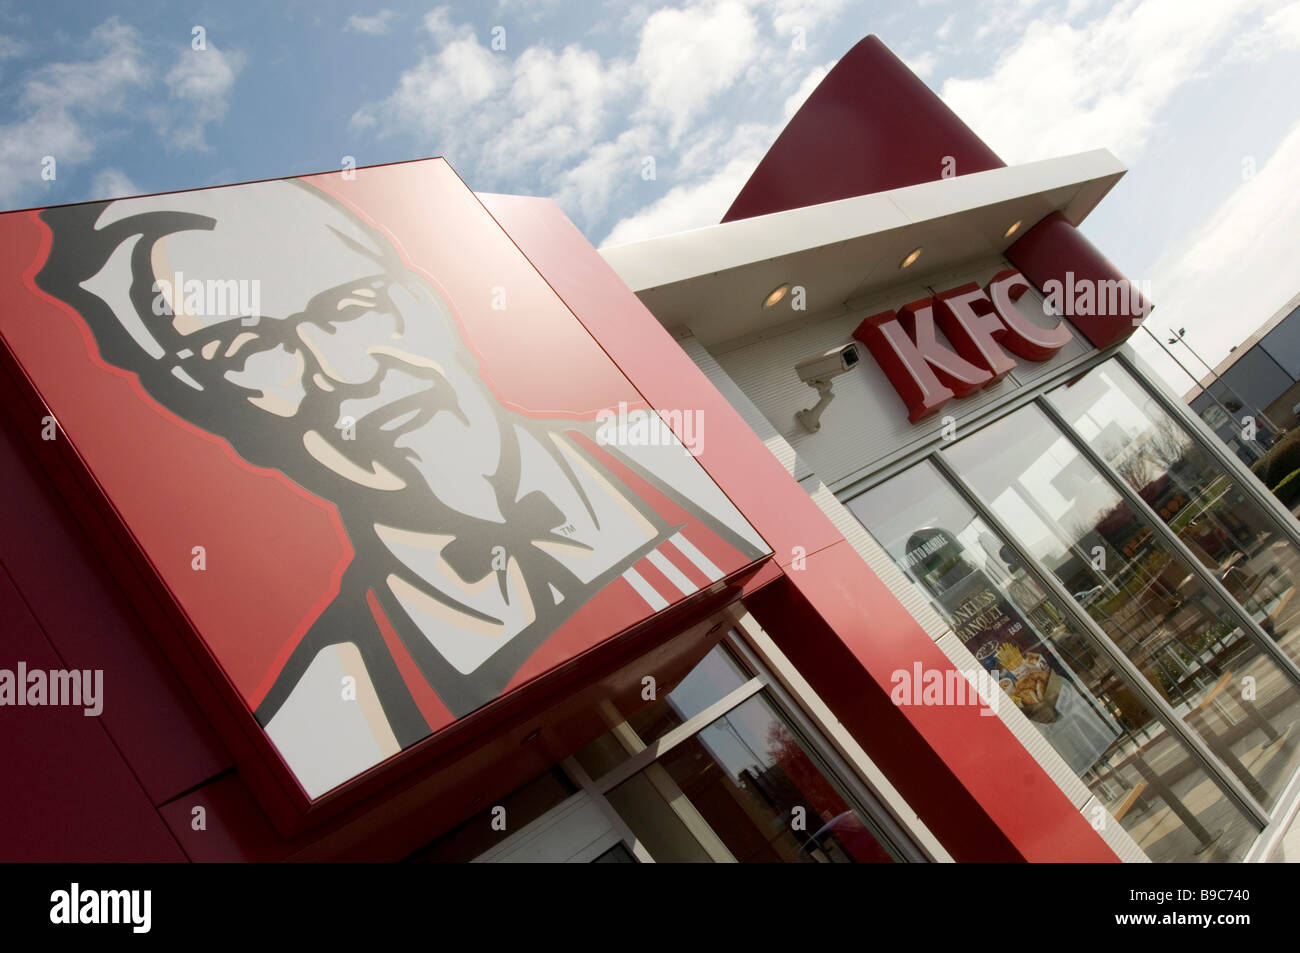 Kentucky fried chicken colonel sanders southern restaurant fast junk food bargain bucket kfc outlet pepsico pepsi - Stock Image